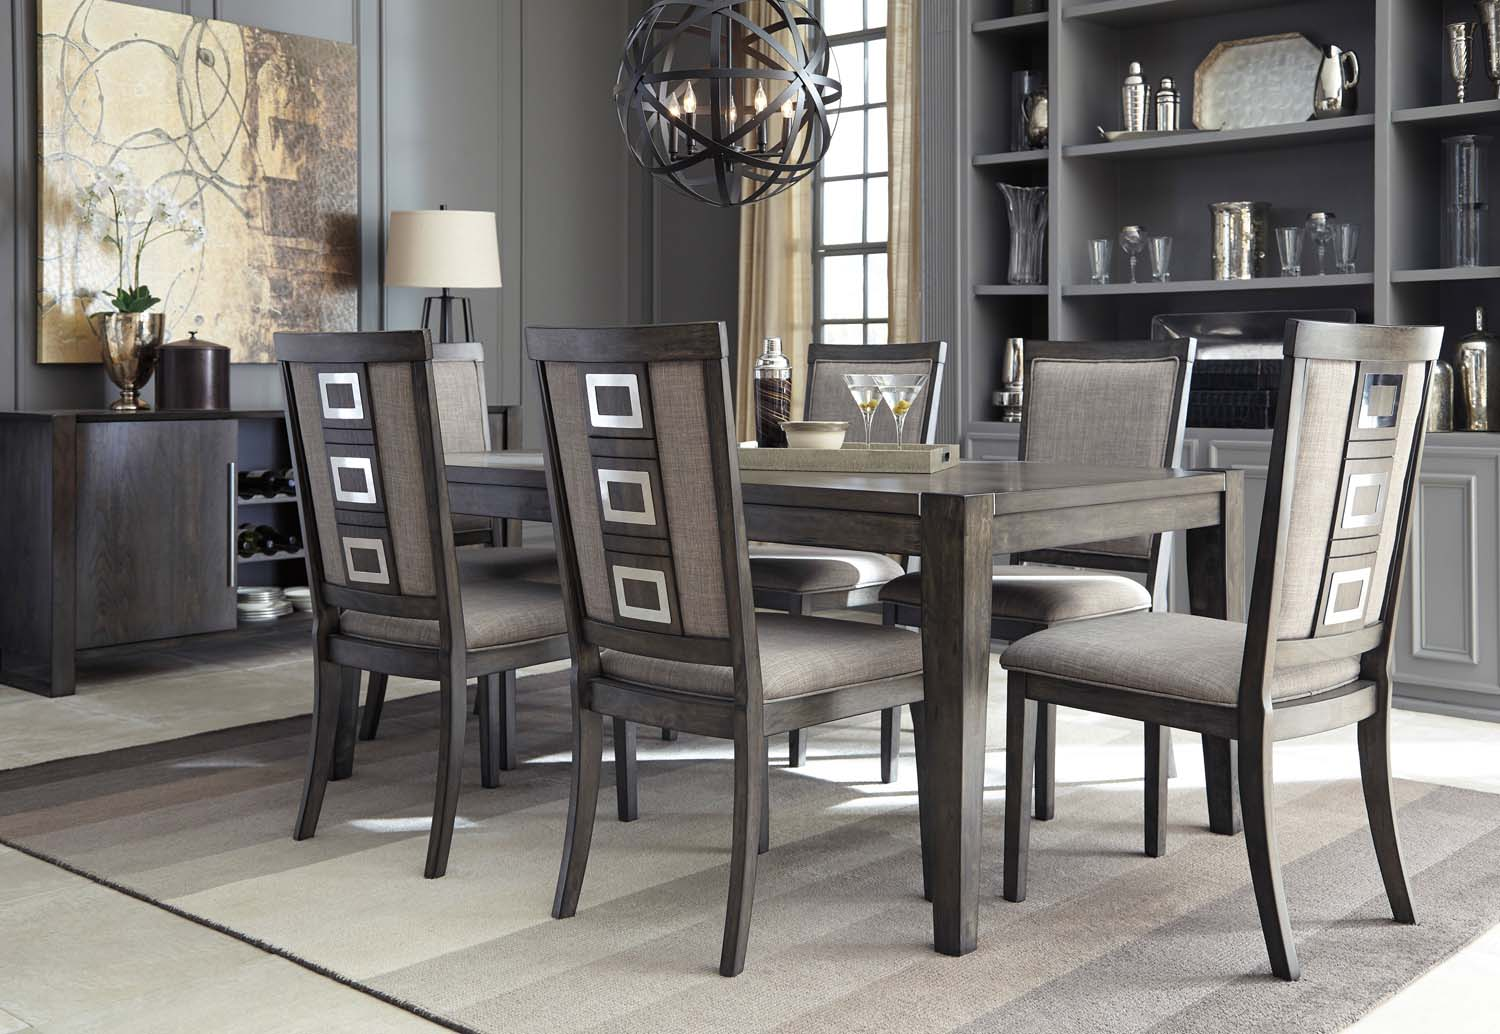 D624d2 In By Ashley Furniture In Orange Ca Chadoni Gray 7 Piece Rh  Designcenterfurniture Com 7 Piece Dining Room Set Under $300 7 Piece Dining  Room Sets ...